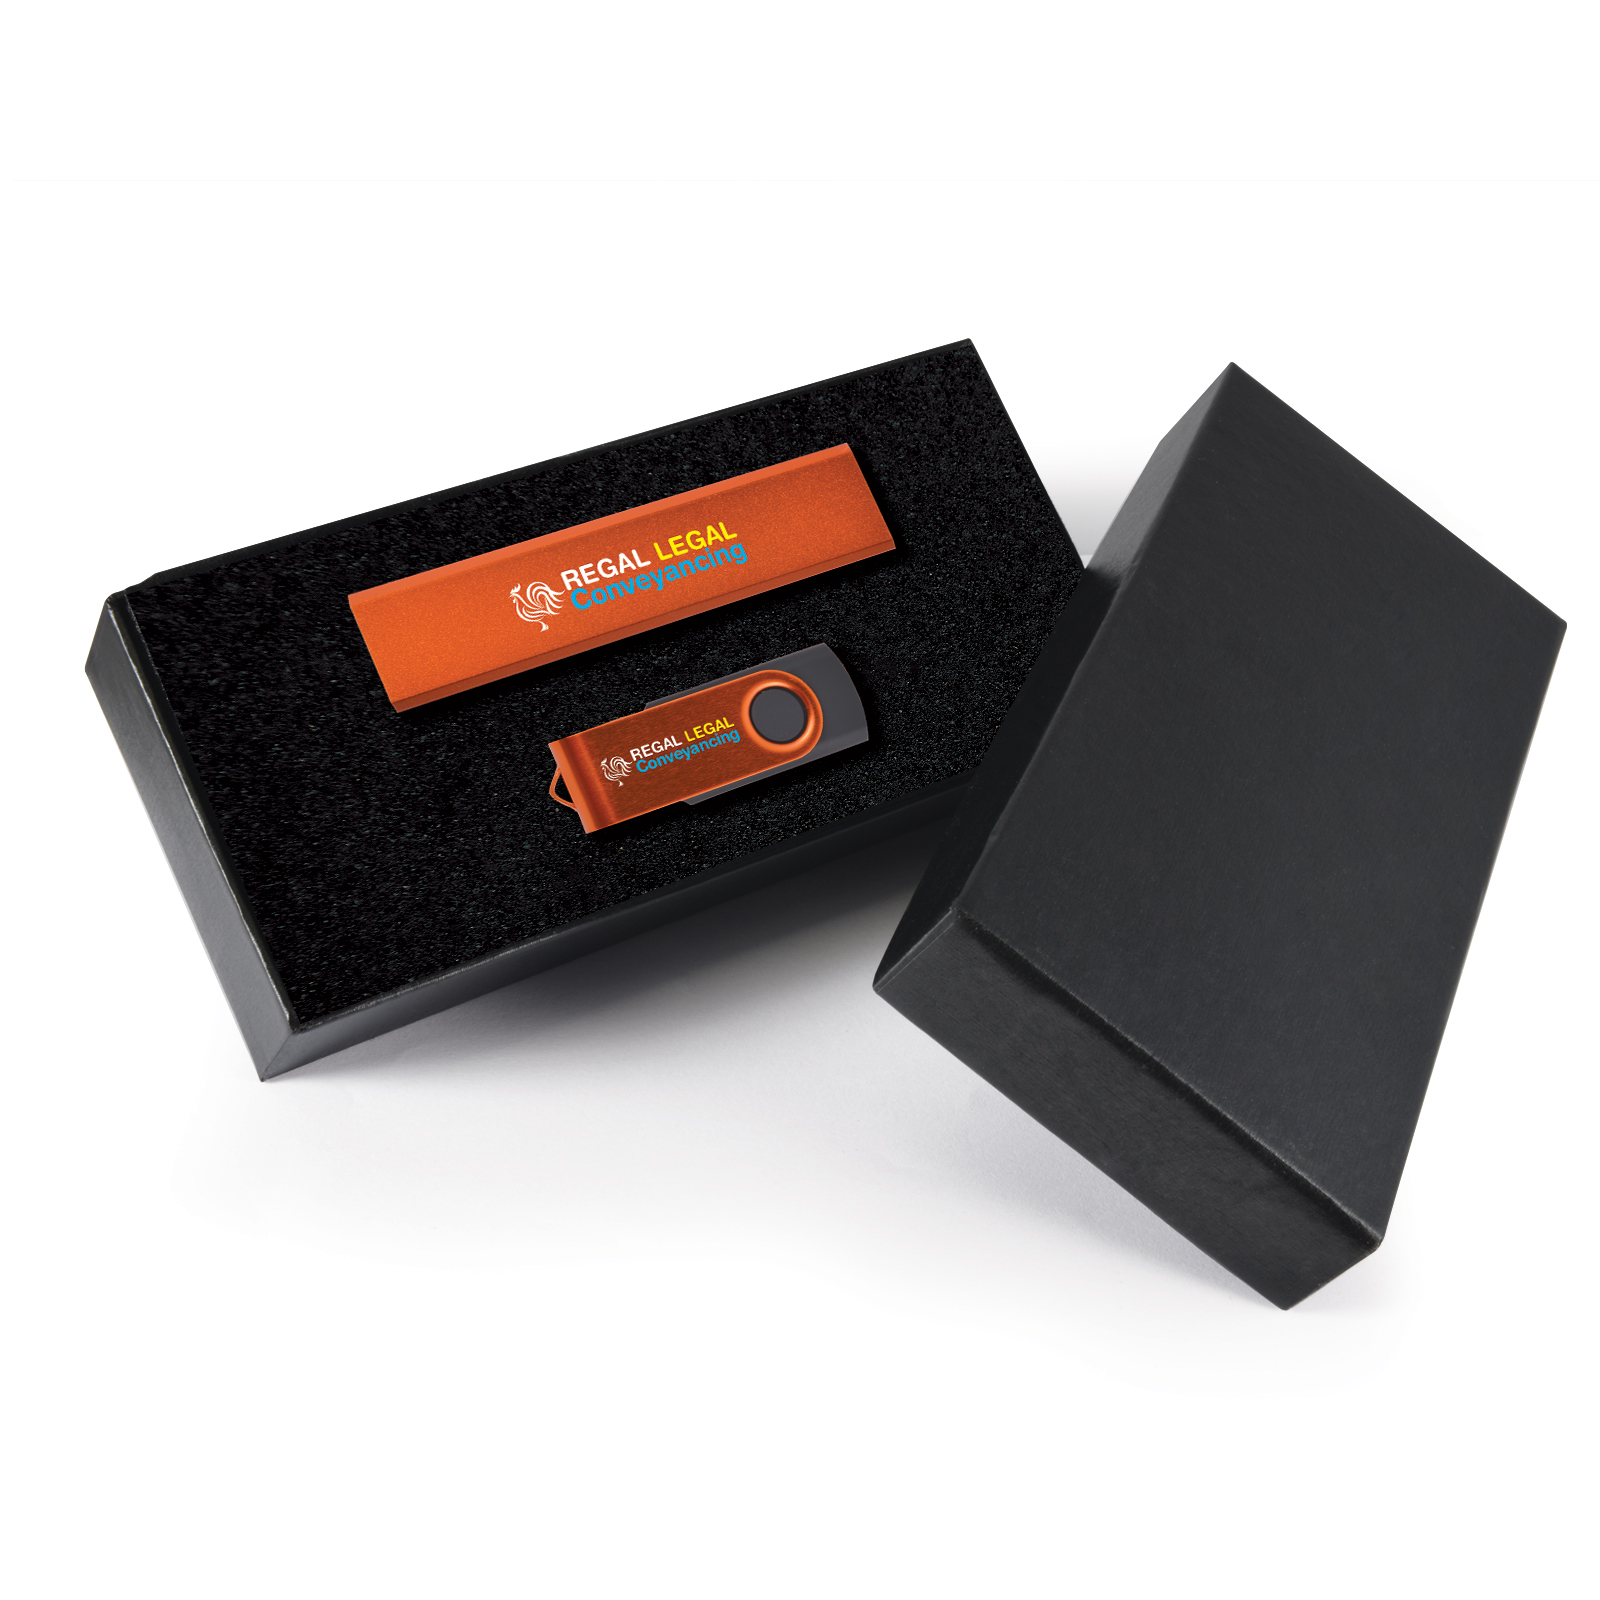 Infinity Gift Set - 2 Pos Digital Print - Power Bank + Flash Drive